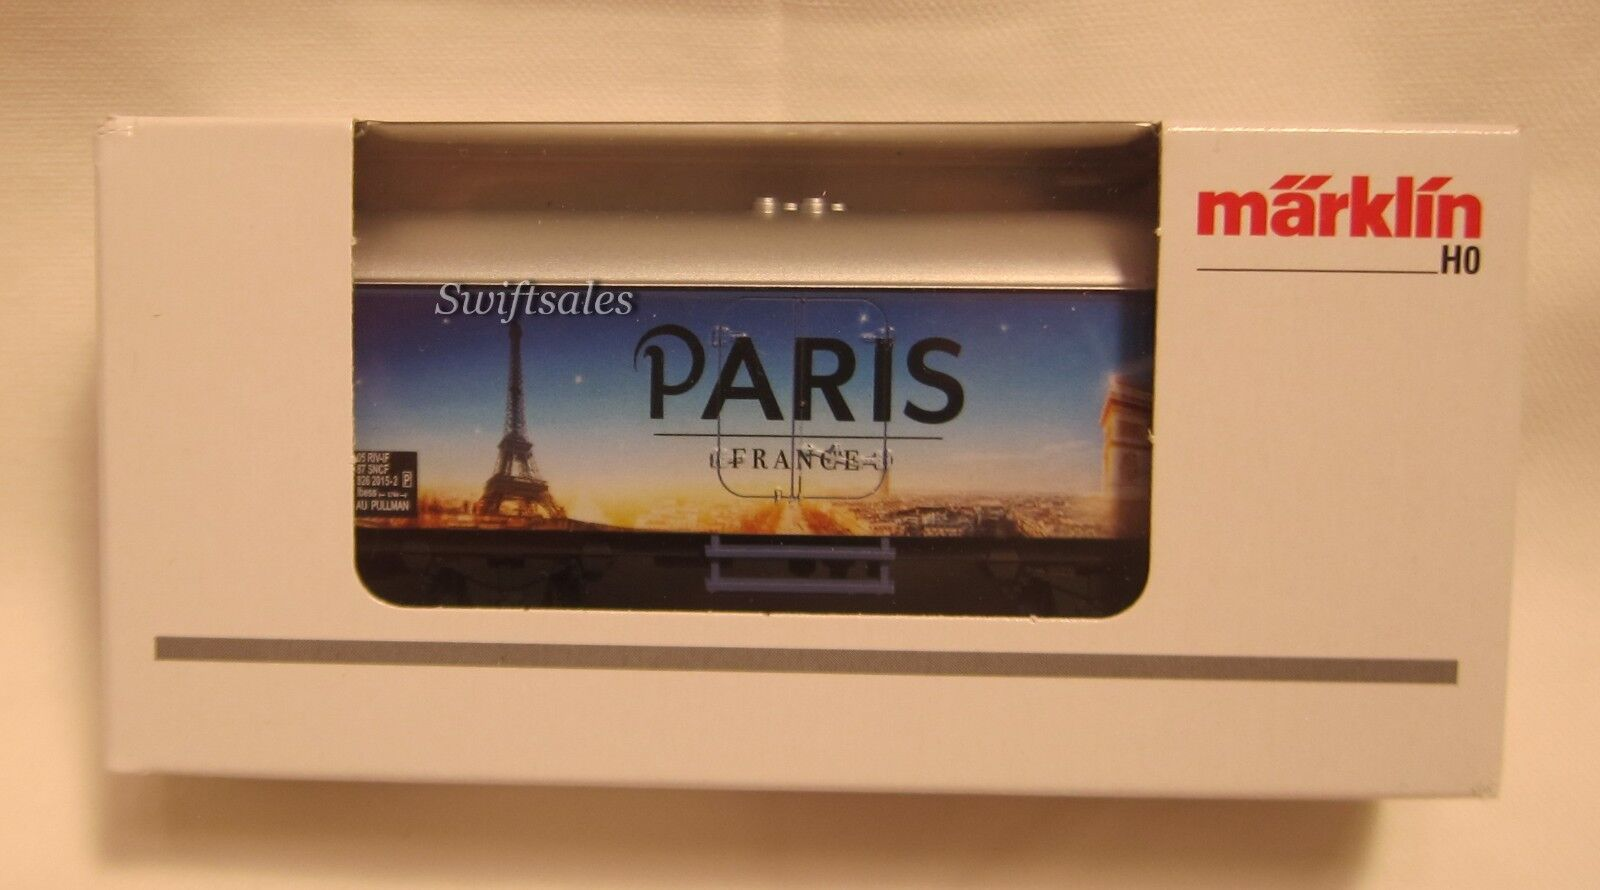 Marklin 4415.603 HO Reefer - Paris France - Limited Edition - Ships From USA!